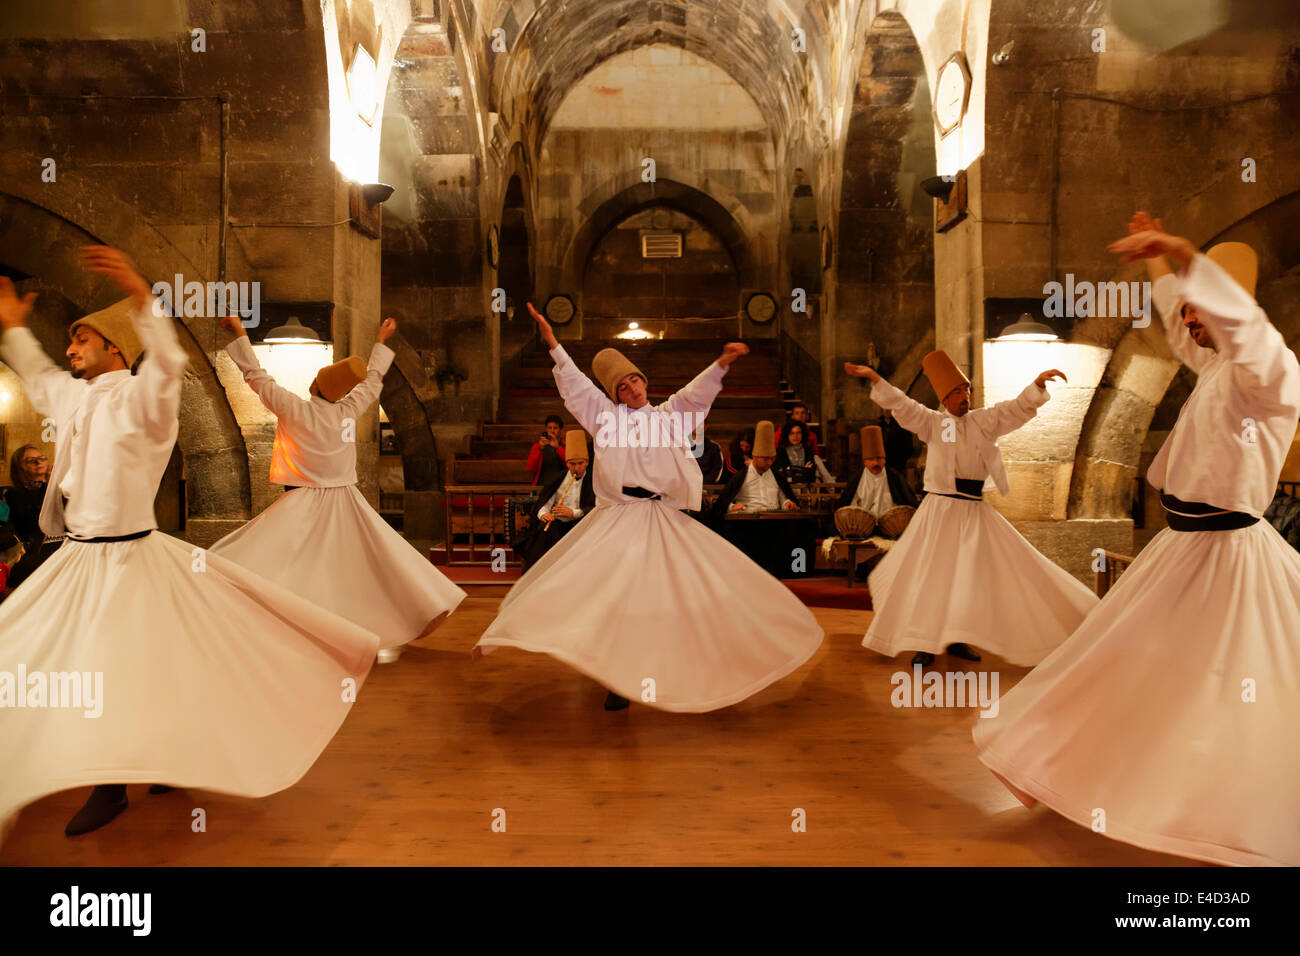 Whirling Dervishes of the Mevlevi Order, Sema ceremony, Saruhan Caravanserai, Sarıhan, near Avanos, Cappadocia - Stock Image